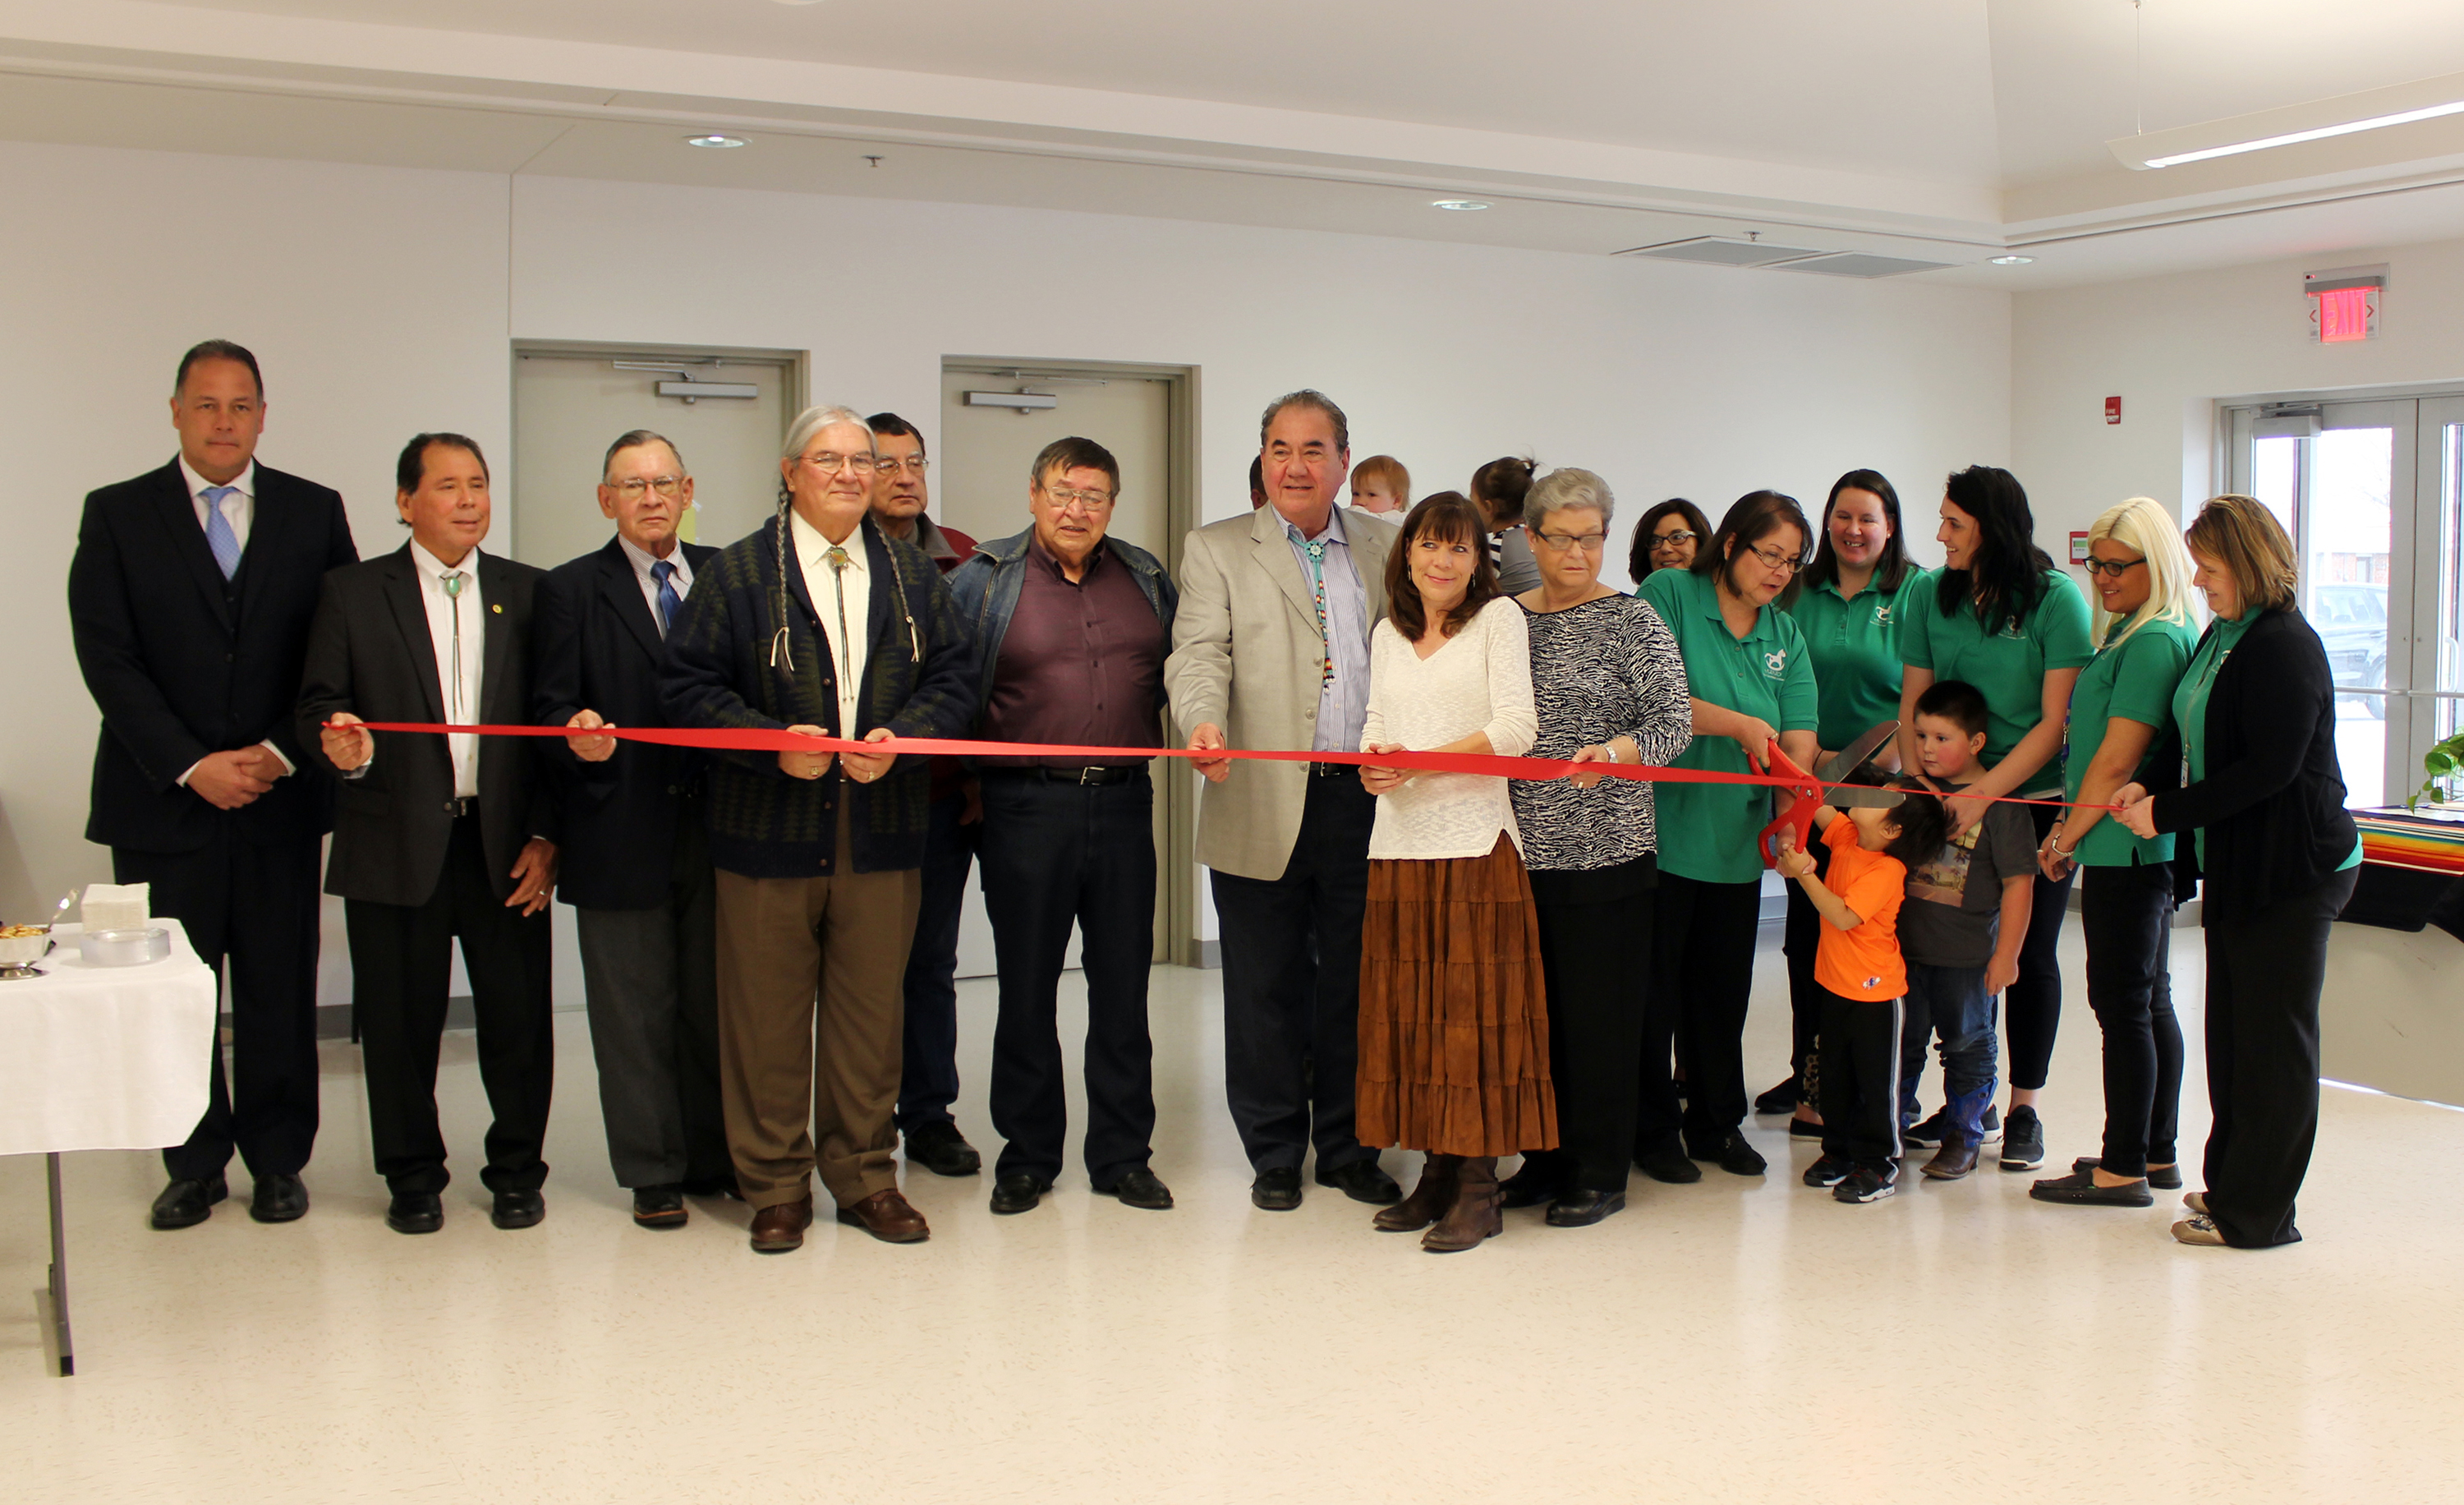 Osage Nation officials open the Fairfax WELA and Fairfax Senior Center